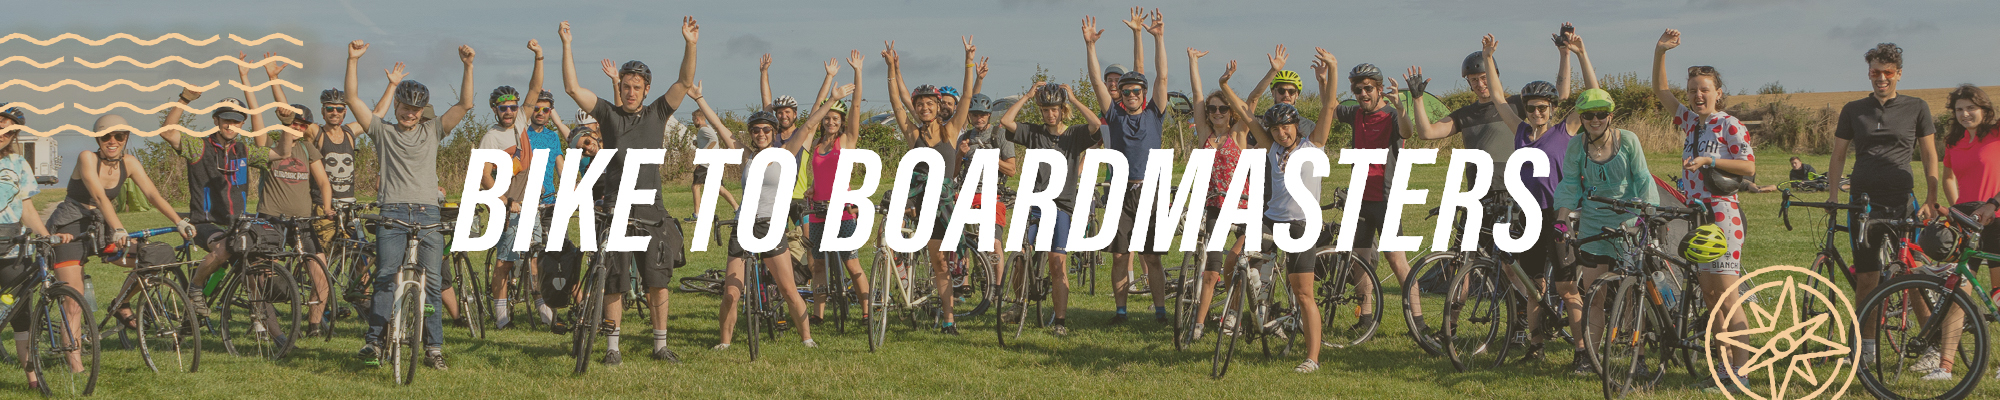 Bike To Boardmasters